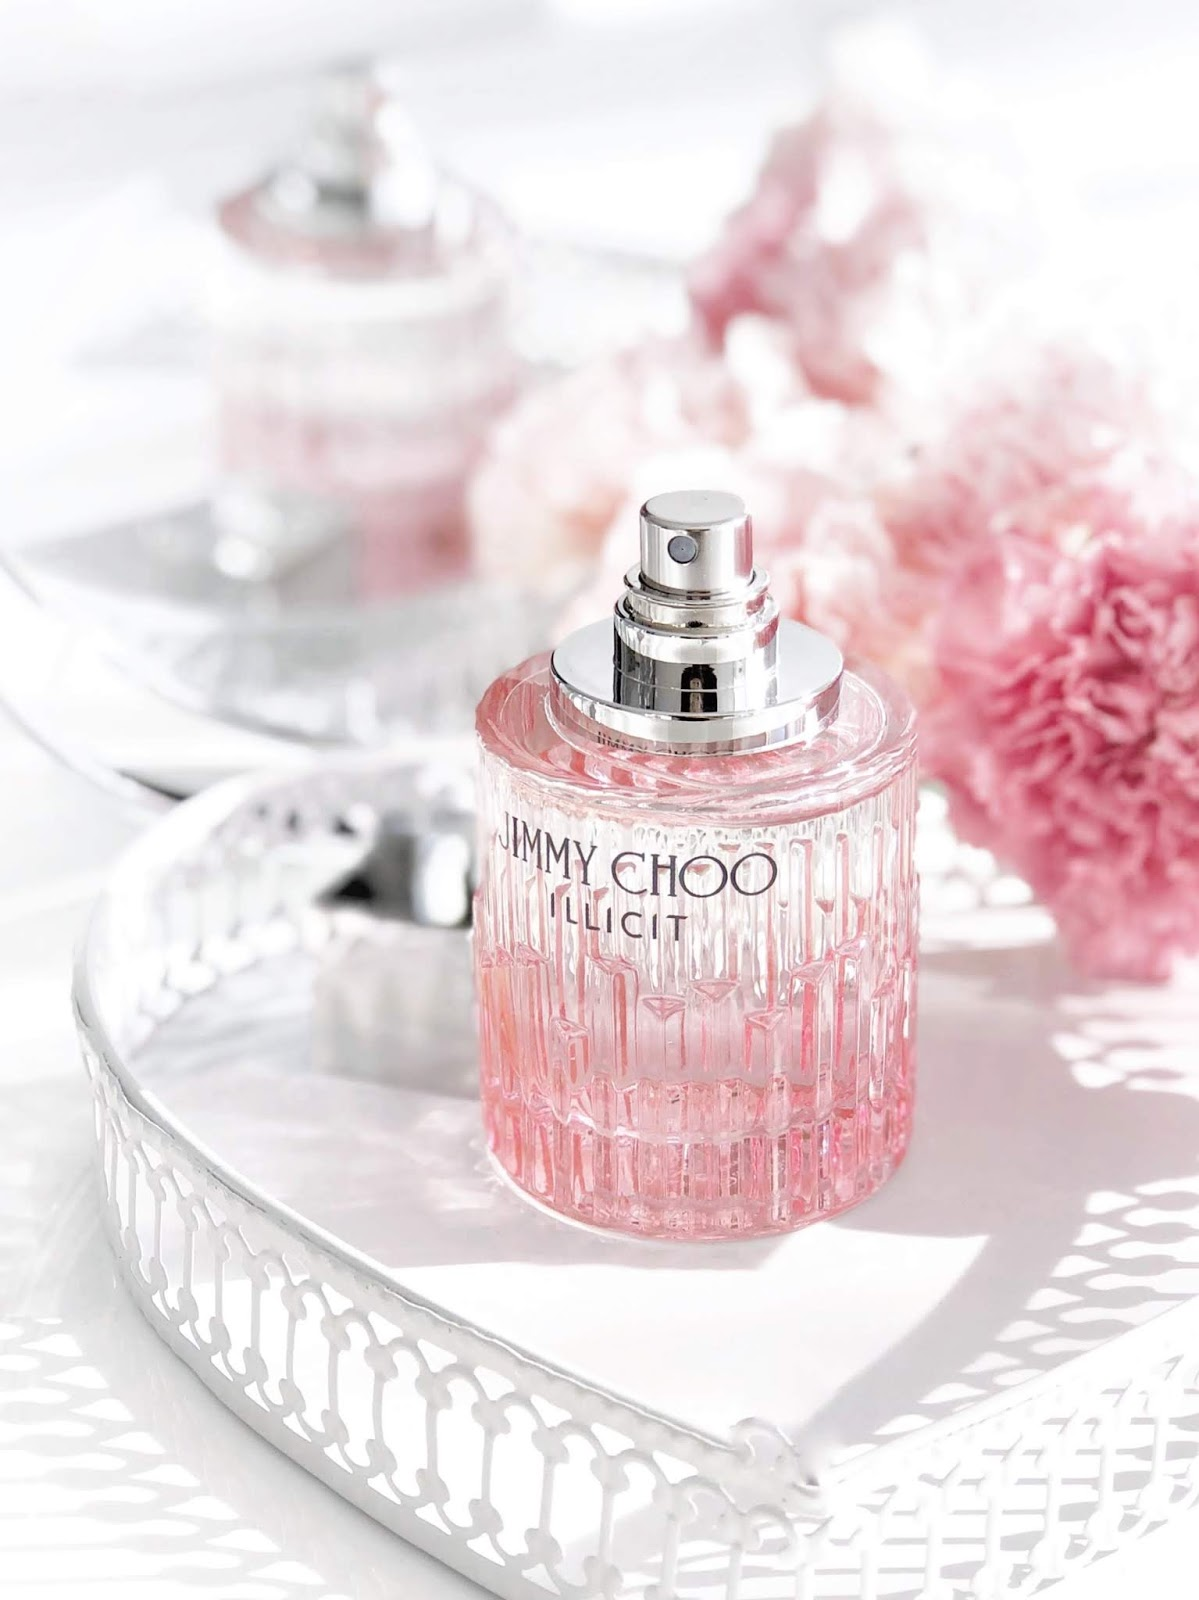 Jimmy Choo Illicit Special Edition